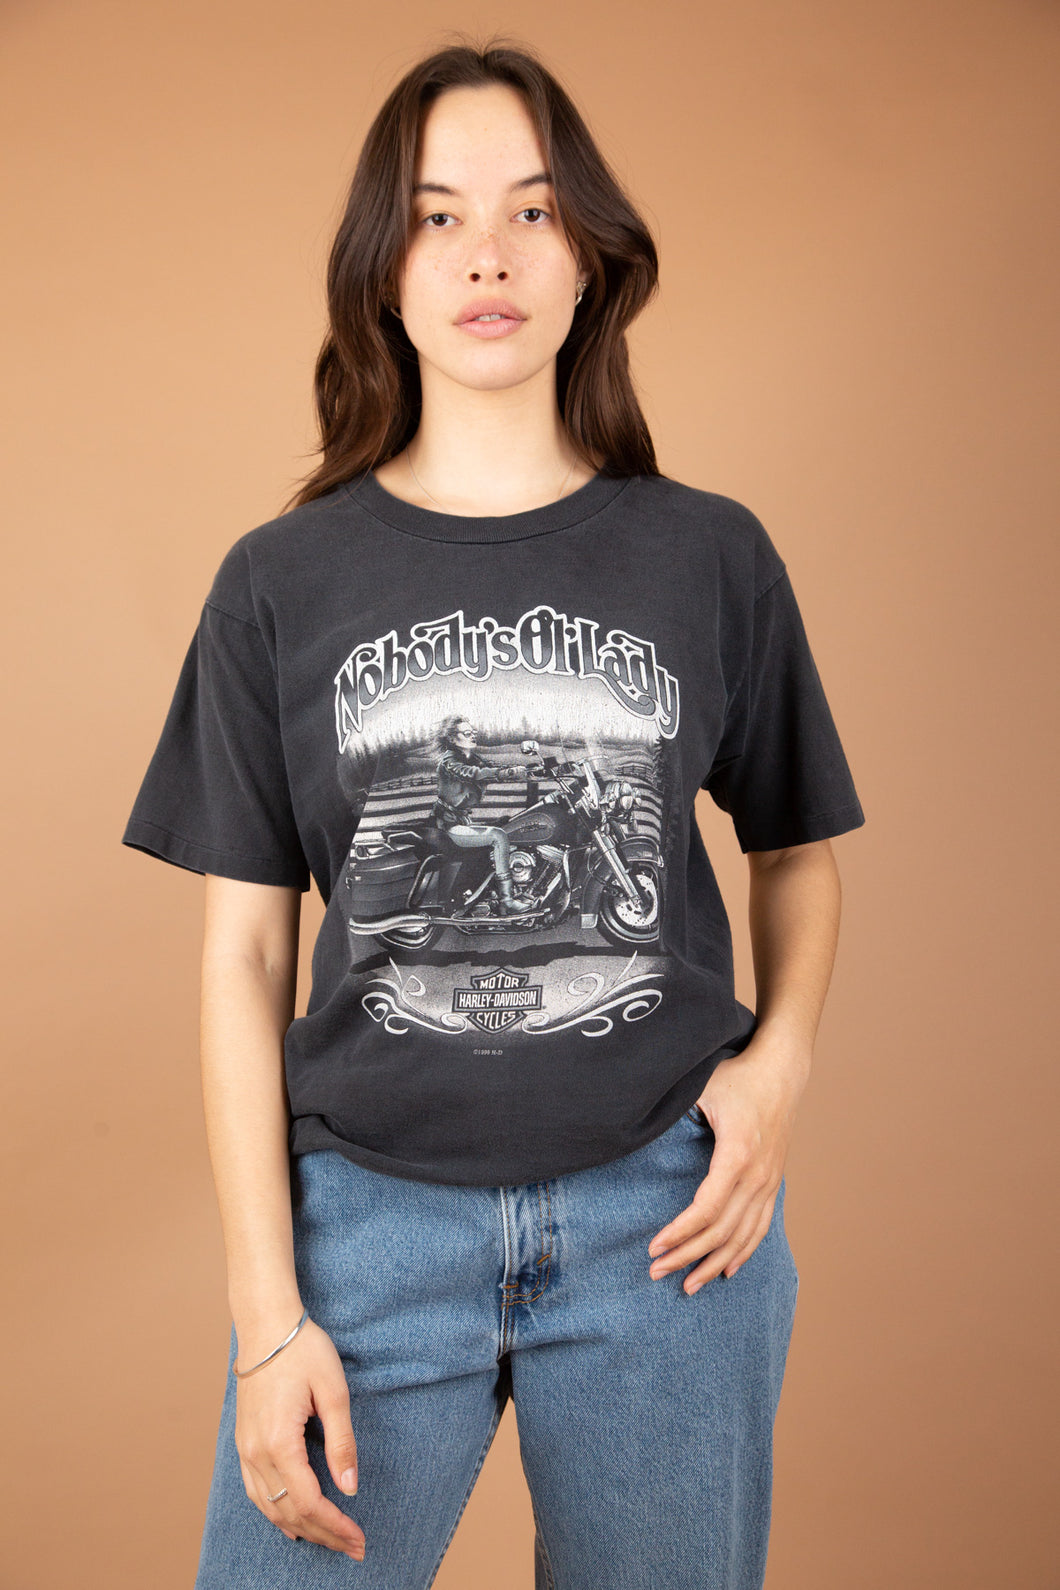 Model wearing Harley Davidson Tee, magichollow